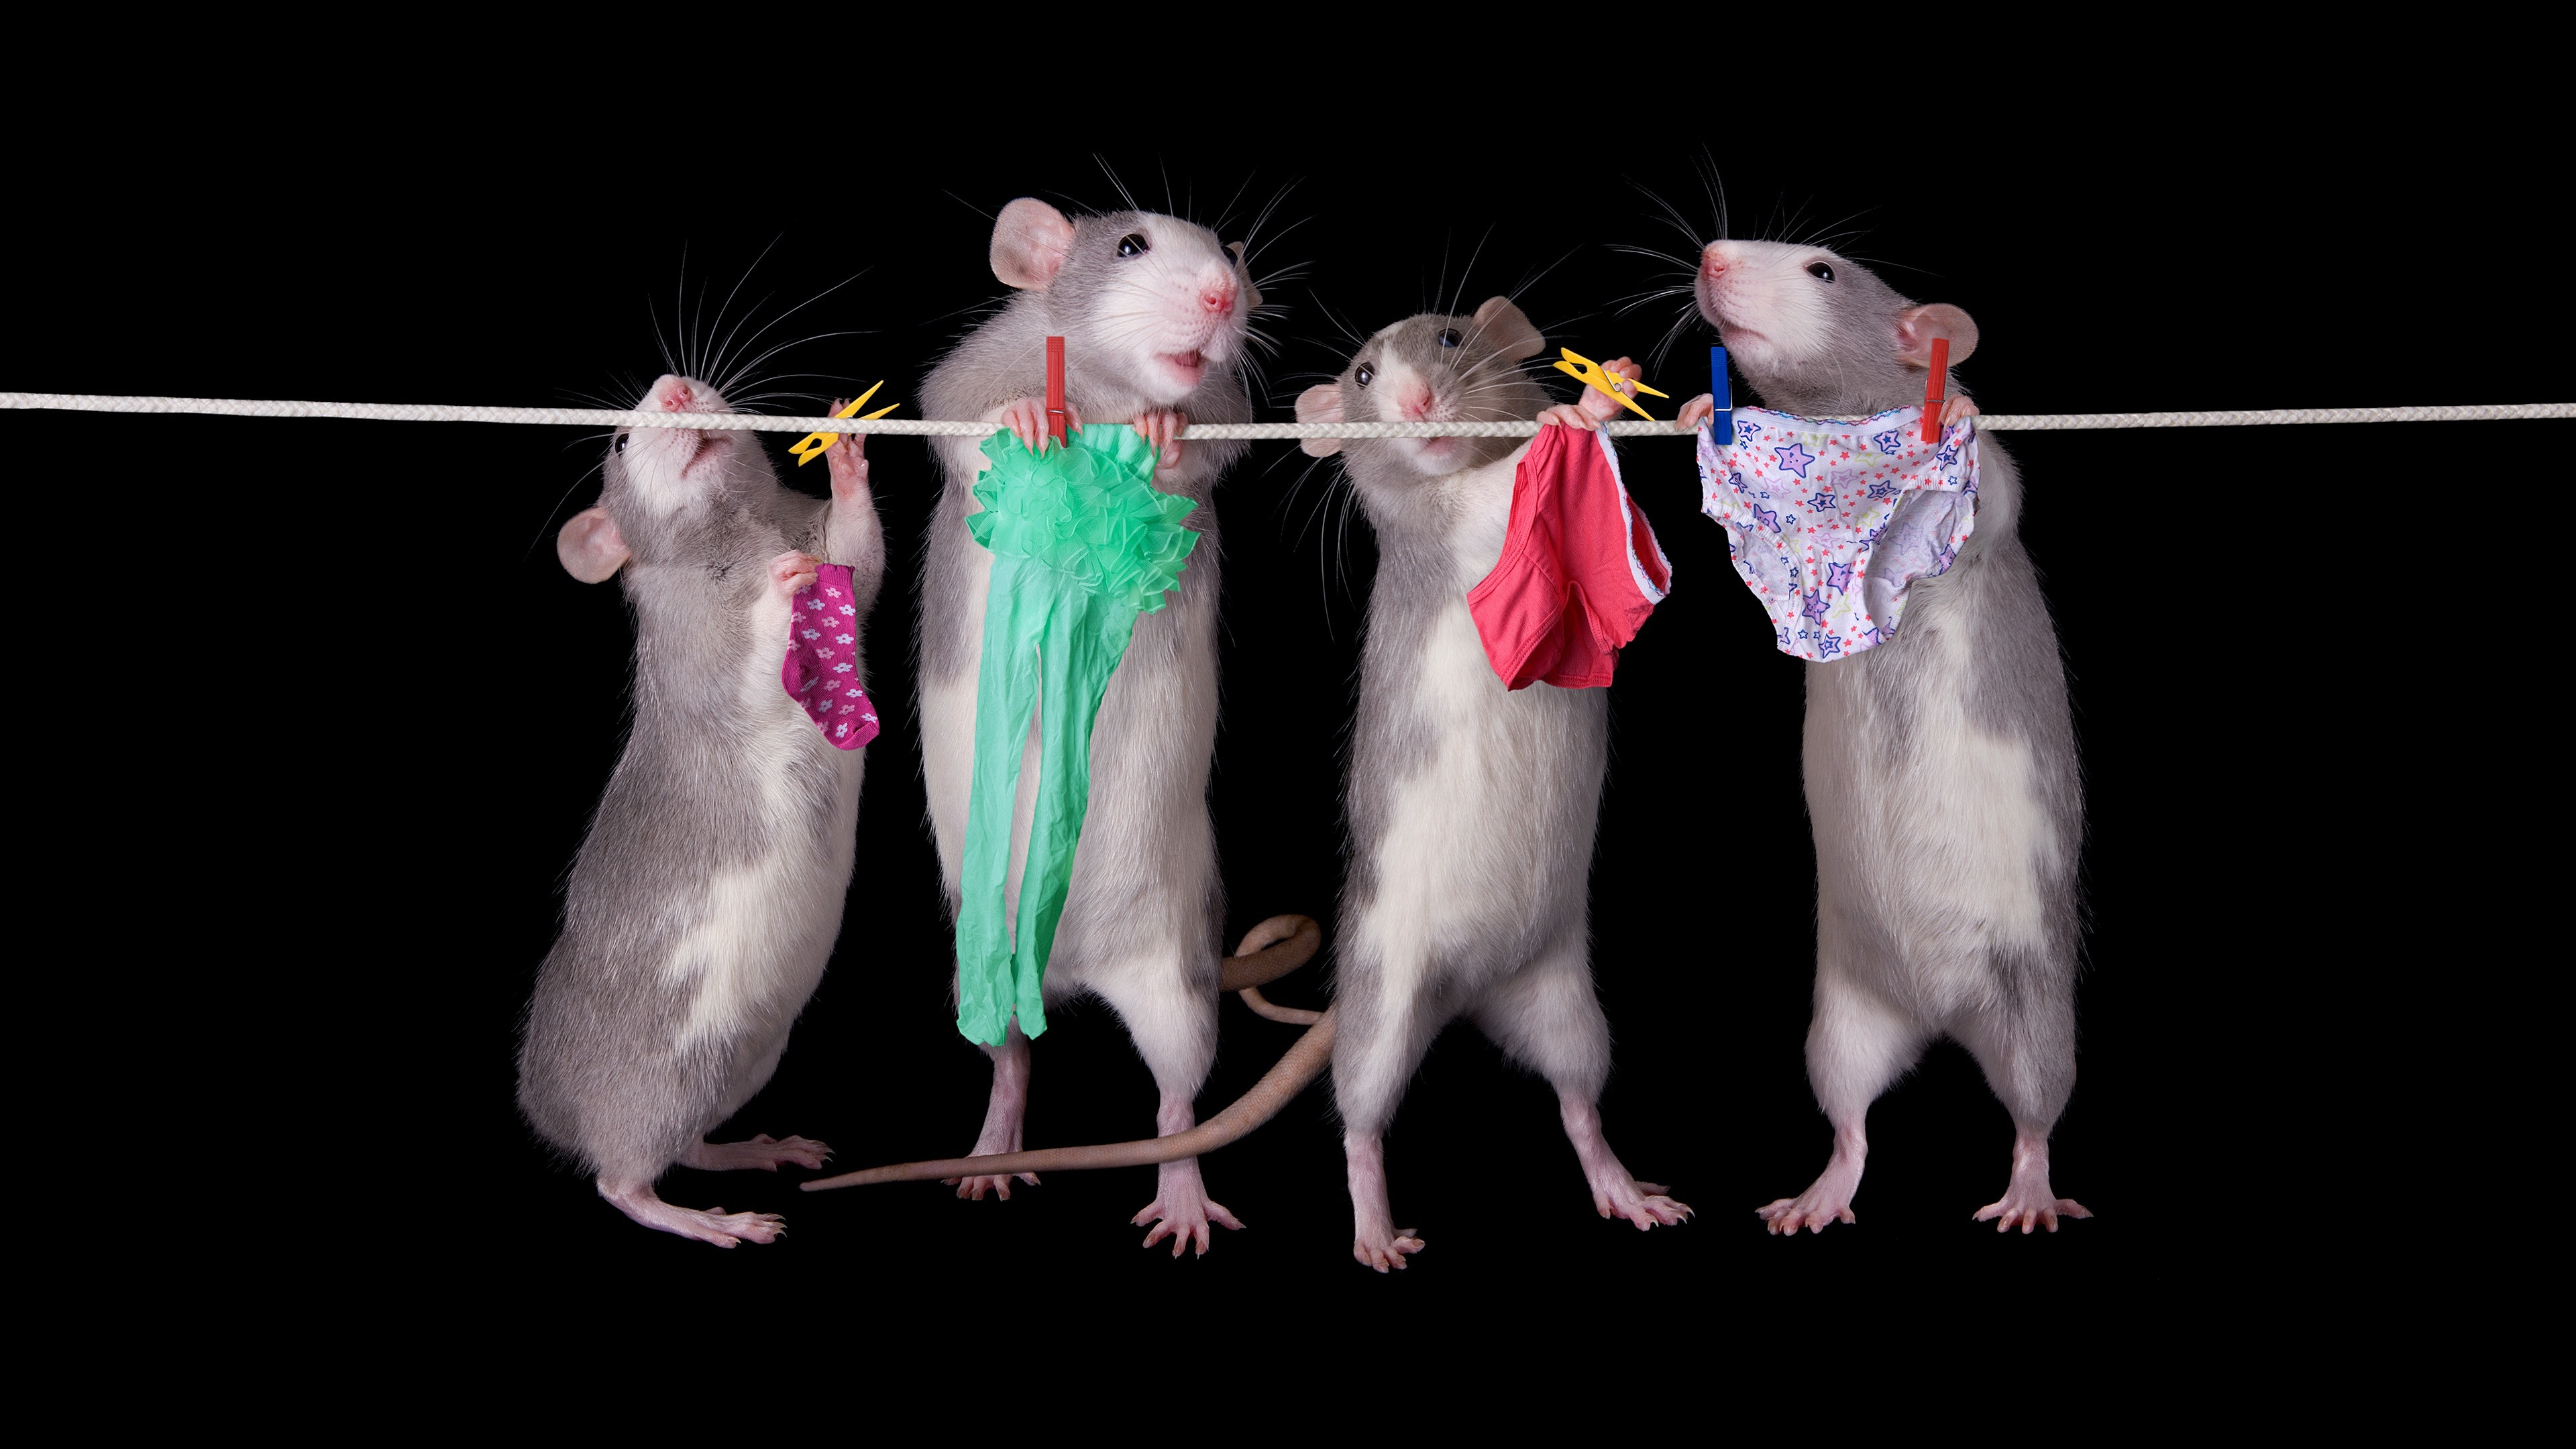 wallpaper four rats working 3840x2160 uhd 4k picture image. Black Bedroom Furniture Sets. Home Design Ideas